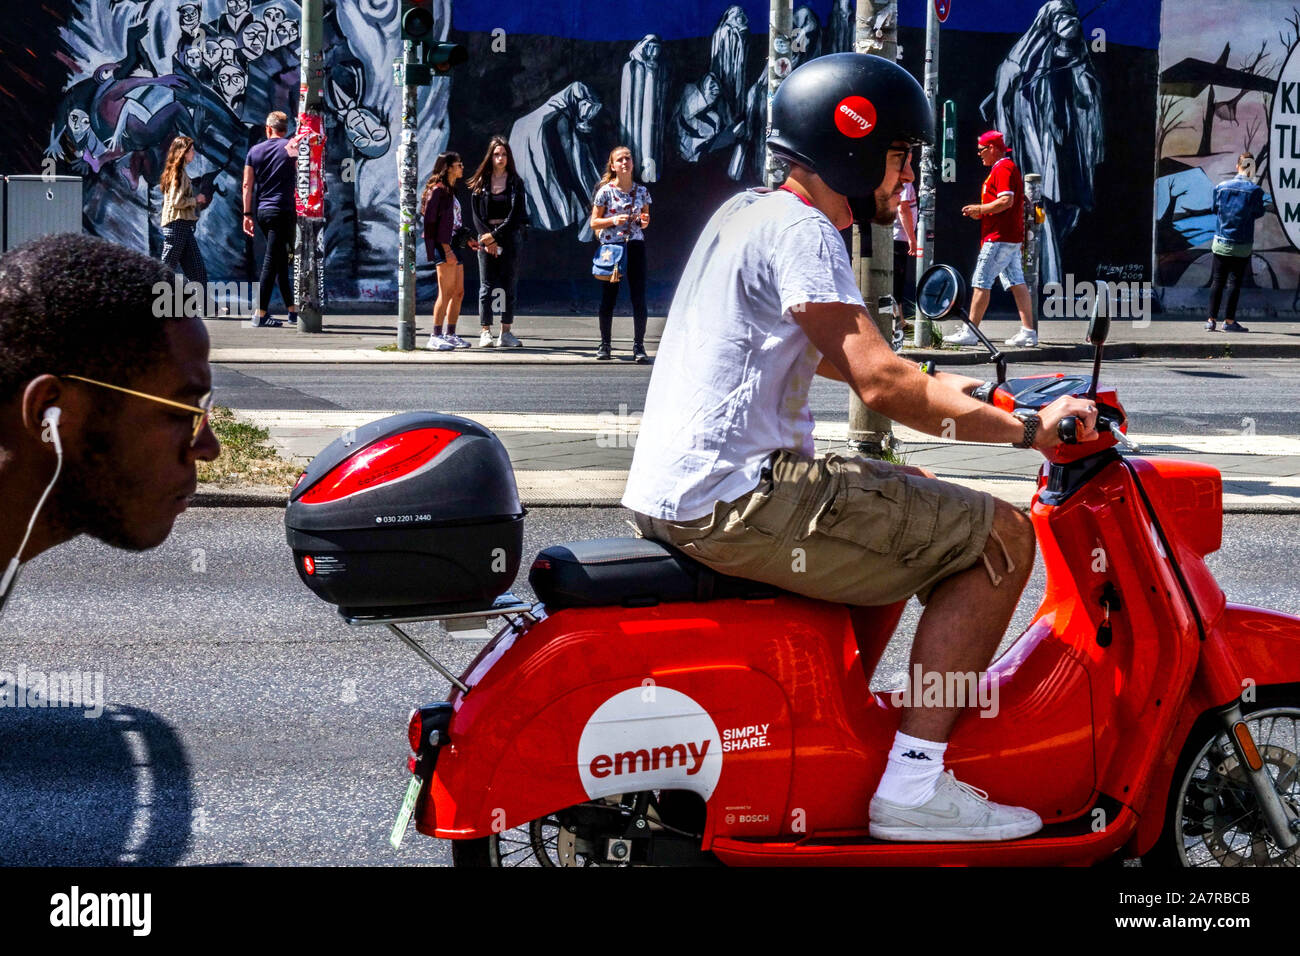 Berlin wall, man on rental scooter Emmy passing in Muhlenstrasse, East Side Gallery Germany Stock Photo